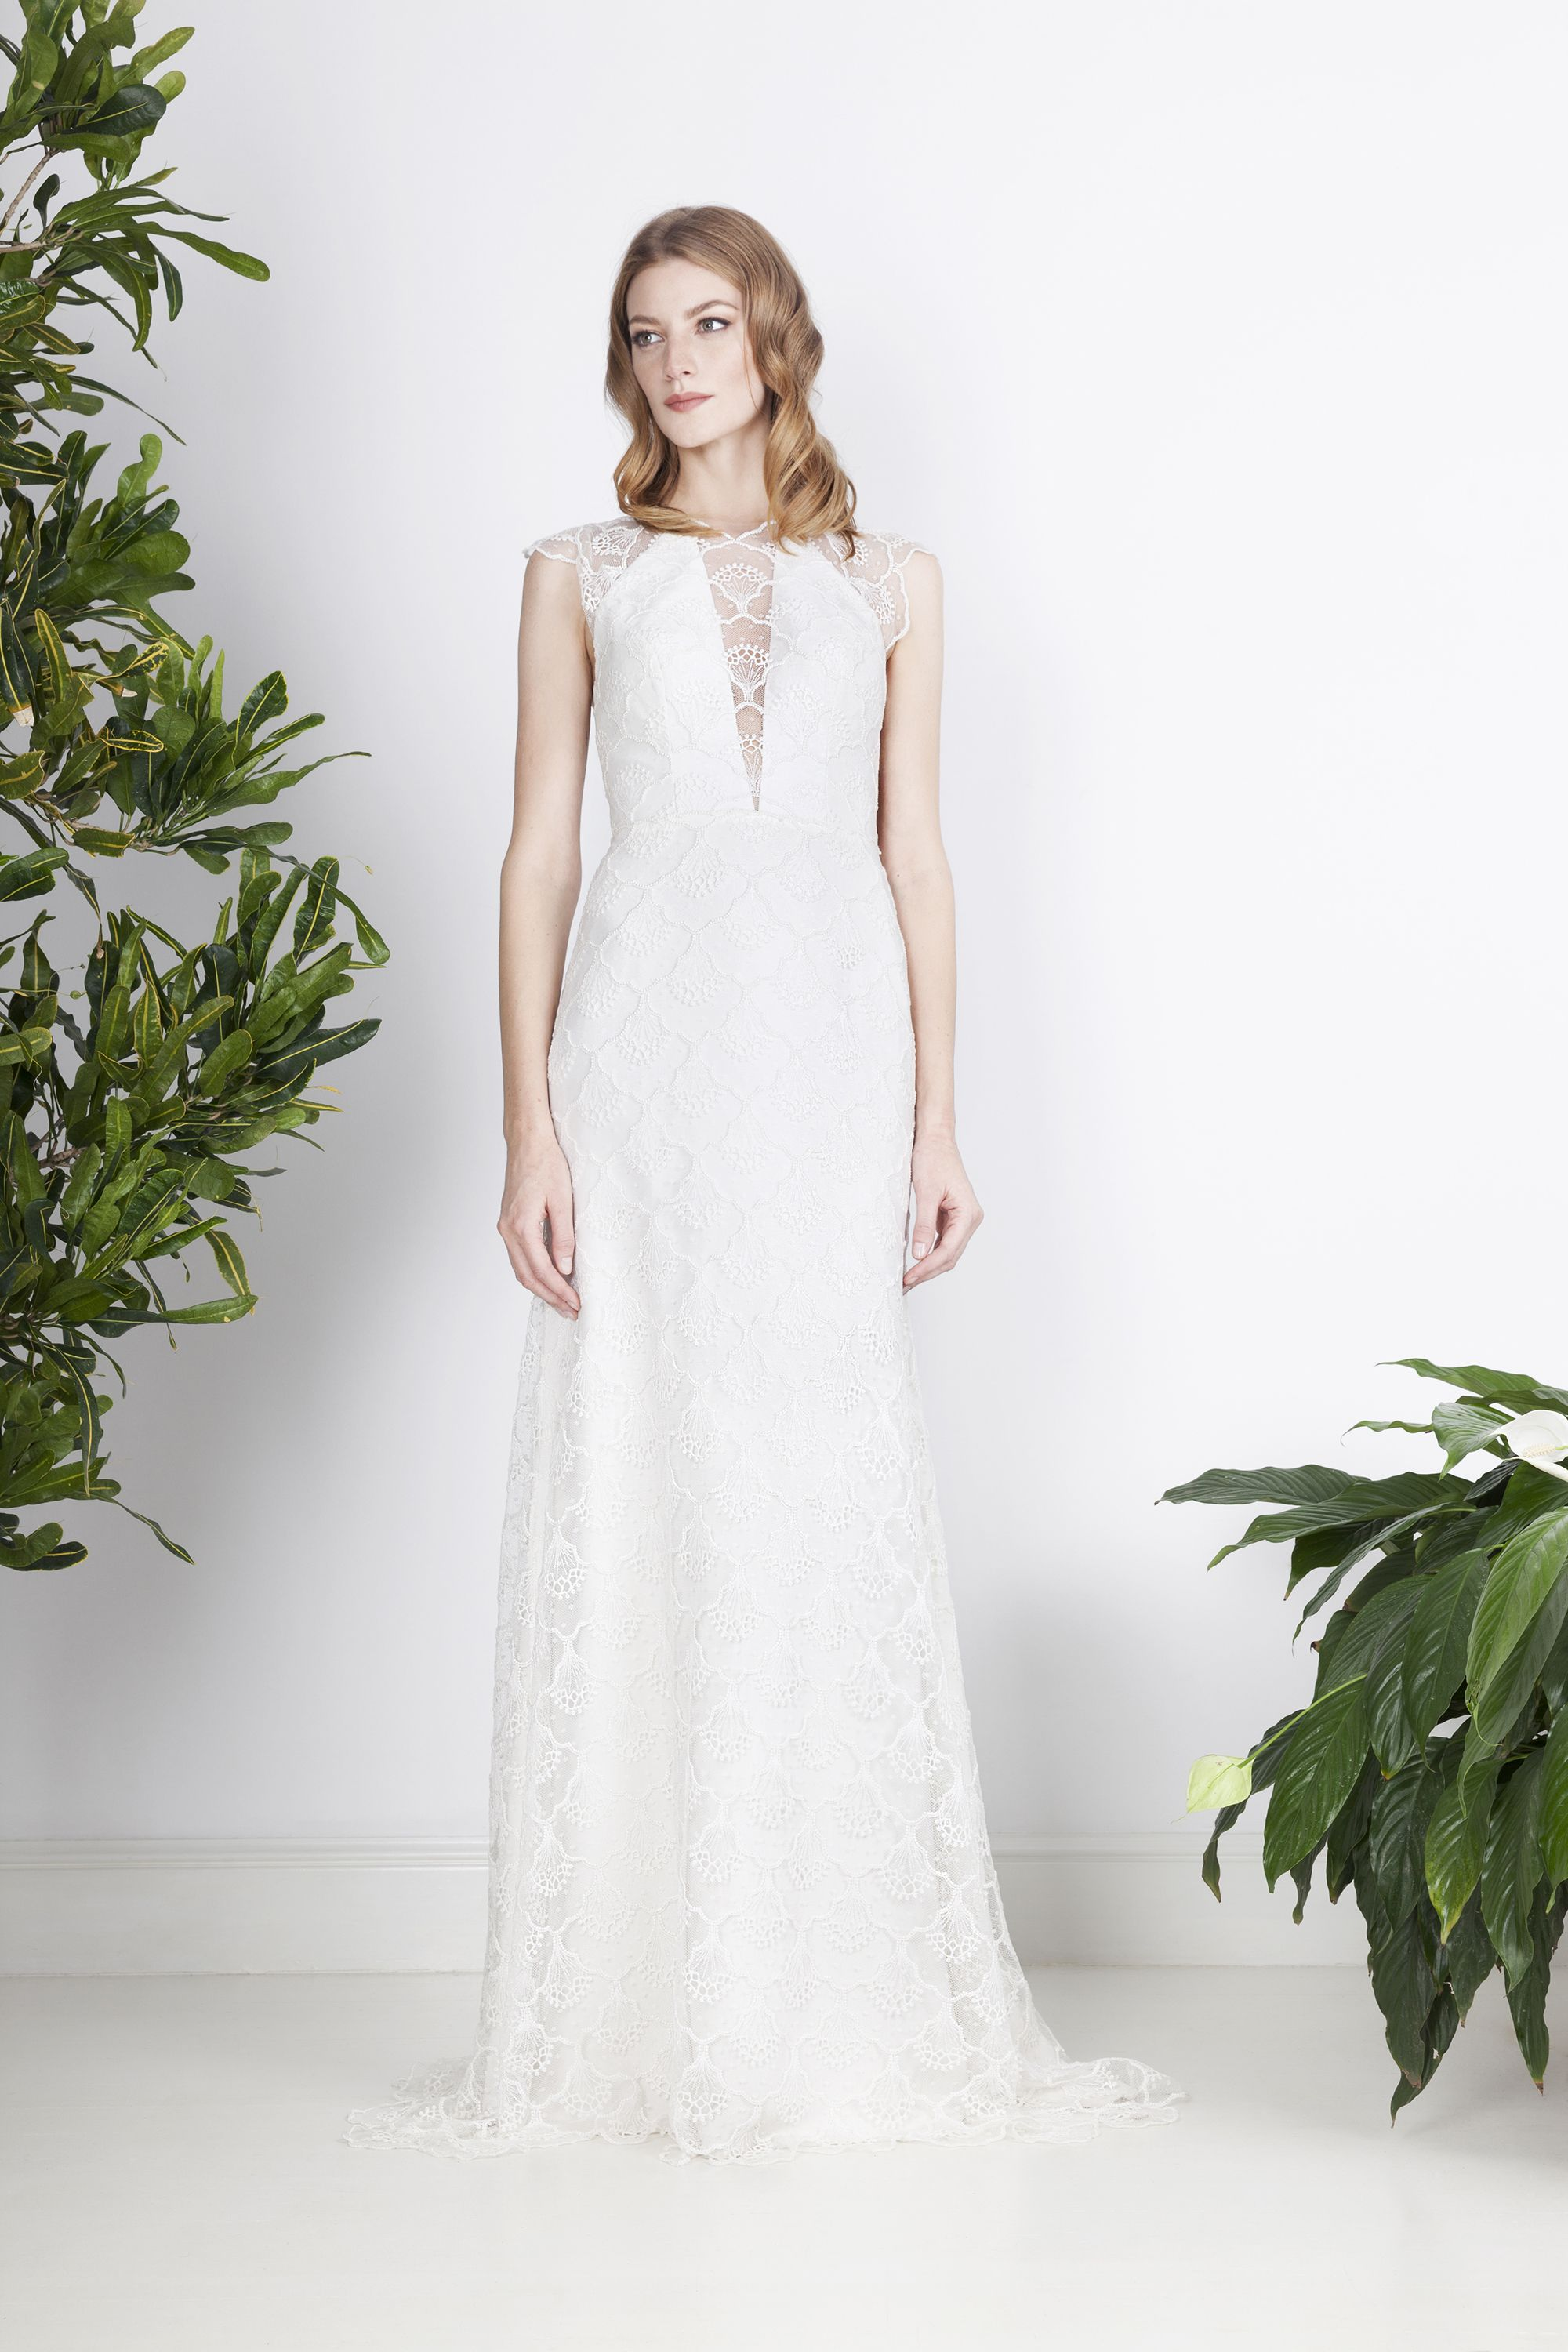 Fluid, minimalist wedding dress made of French lace with an illusion ...